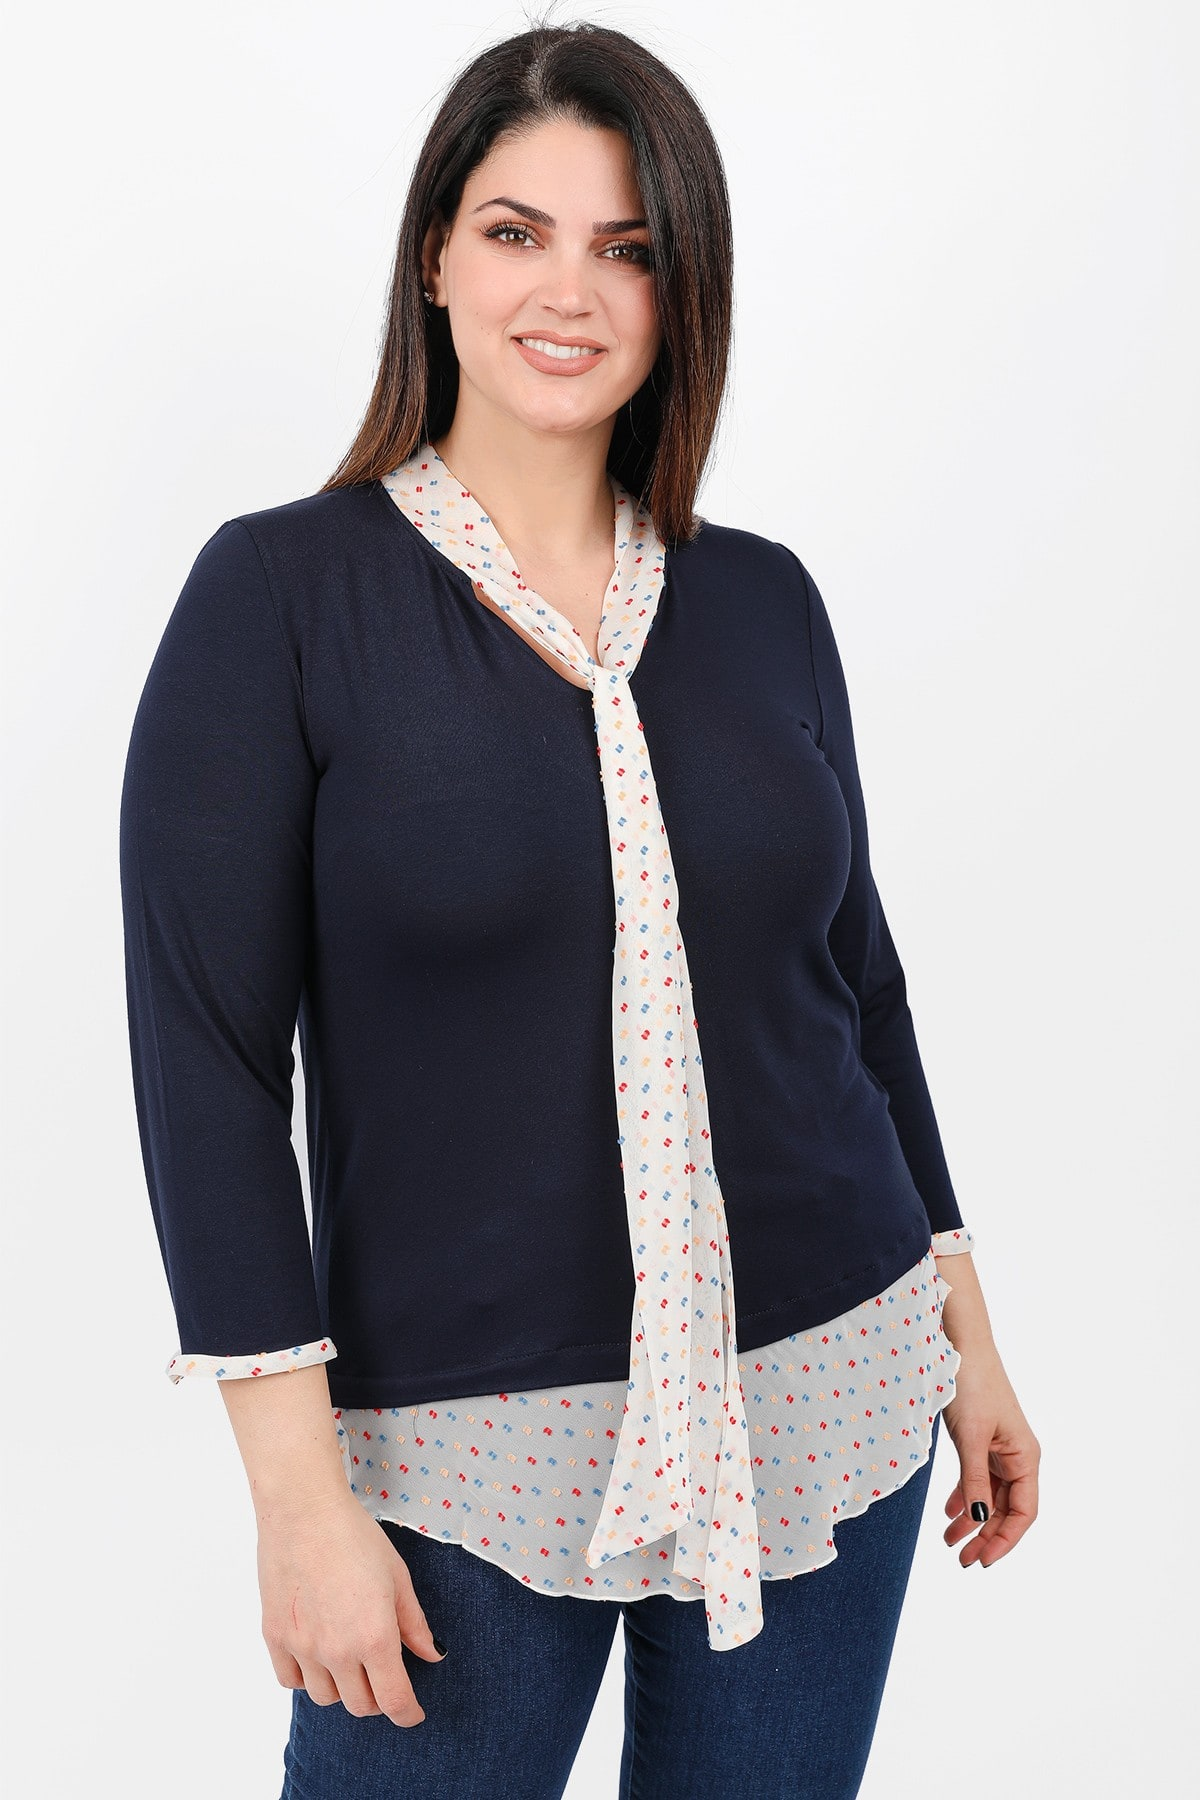 Blouse with printed shirt details